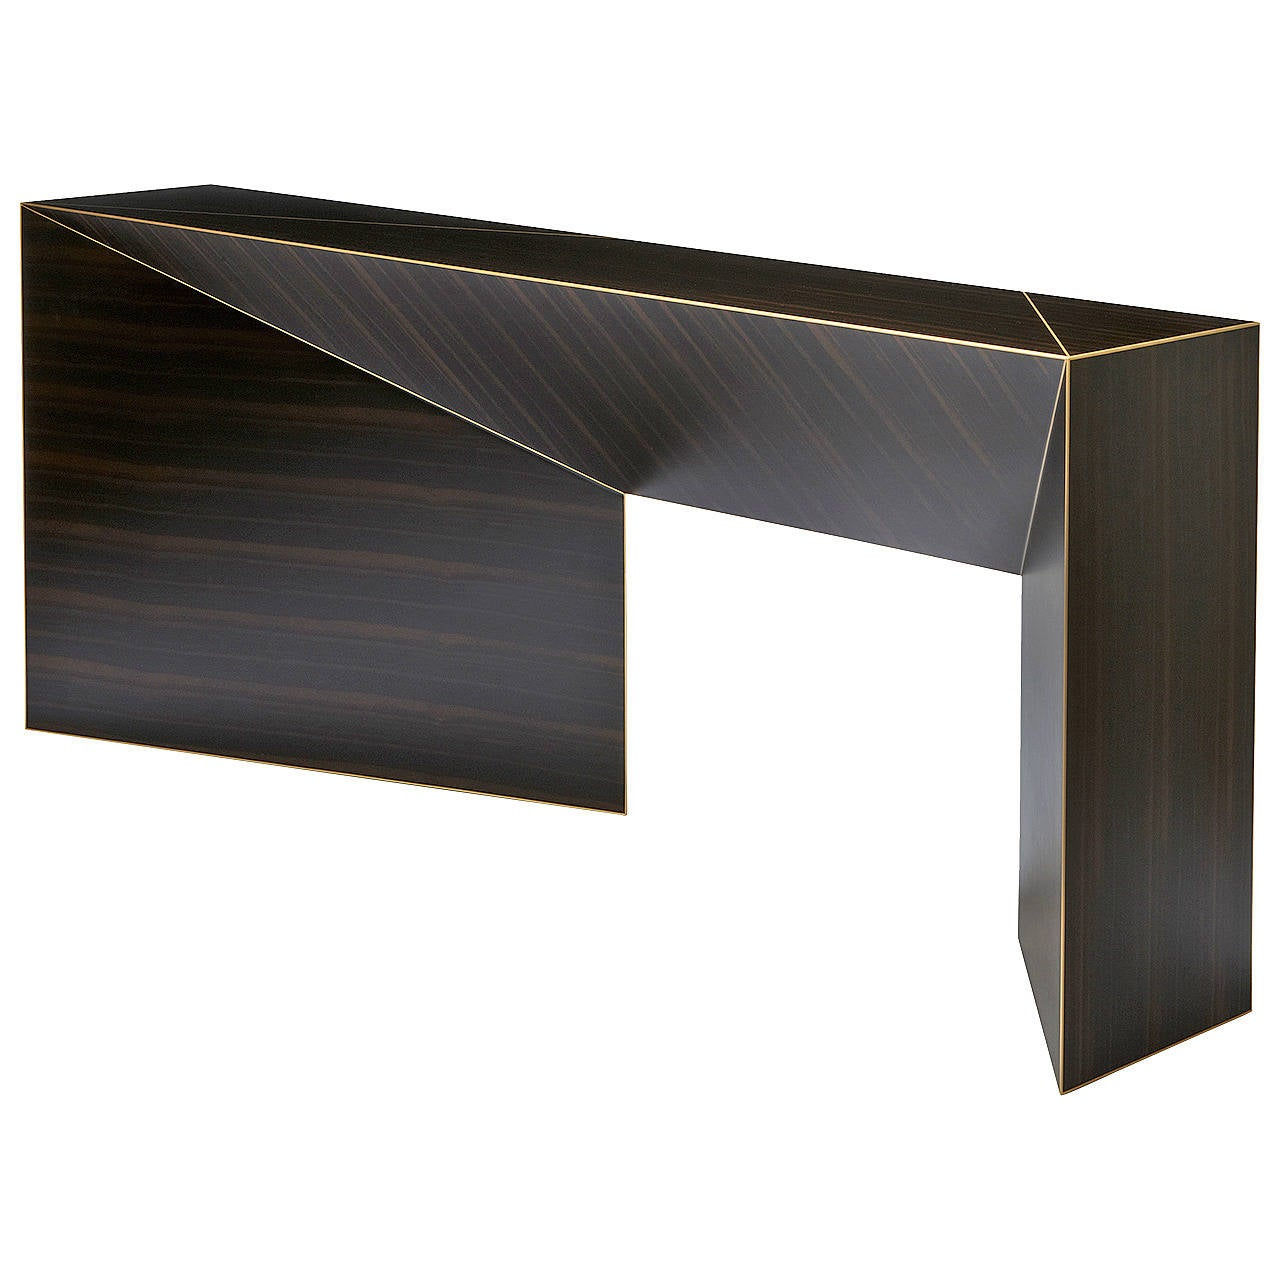 console vertigo by herv langlais for galerie. Black Bedroom Furniture Sets. Home Design Ideas